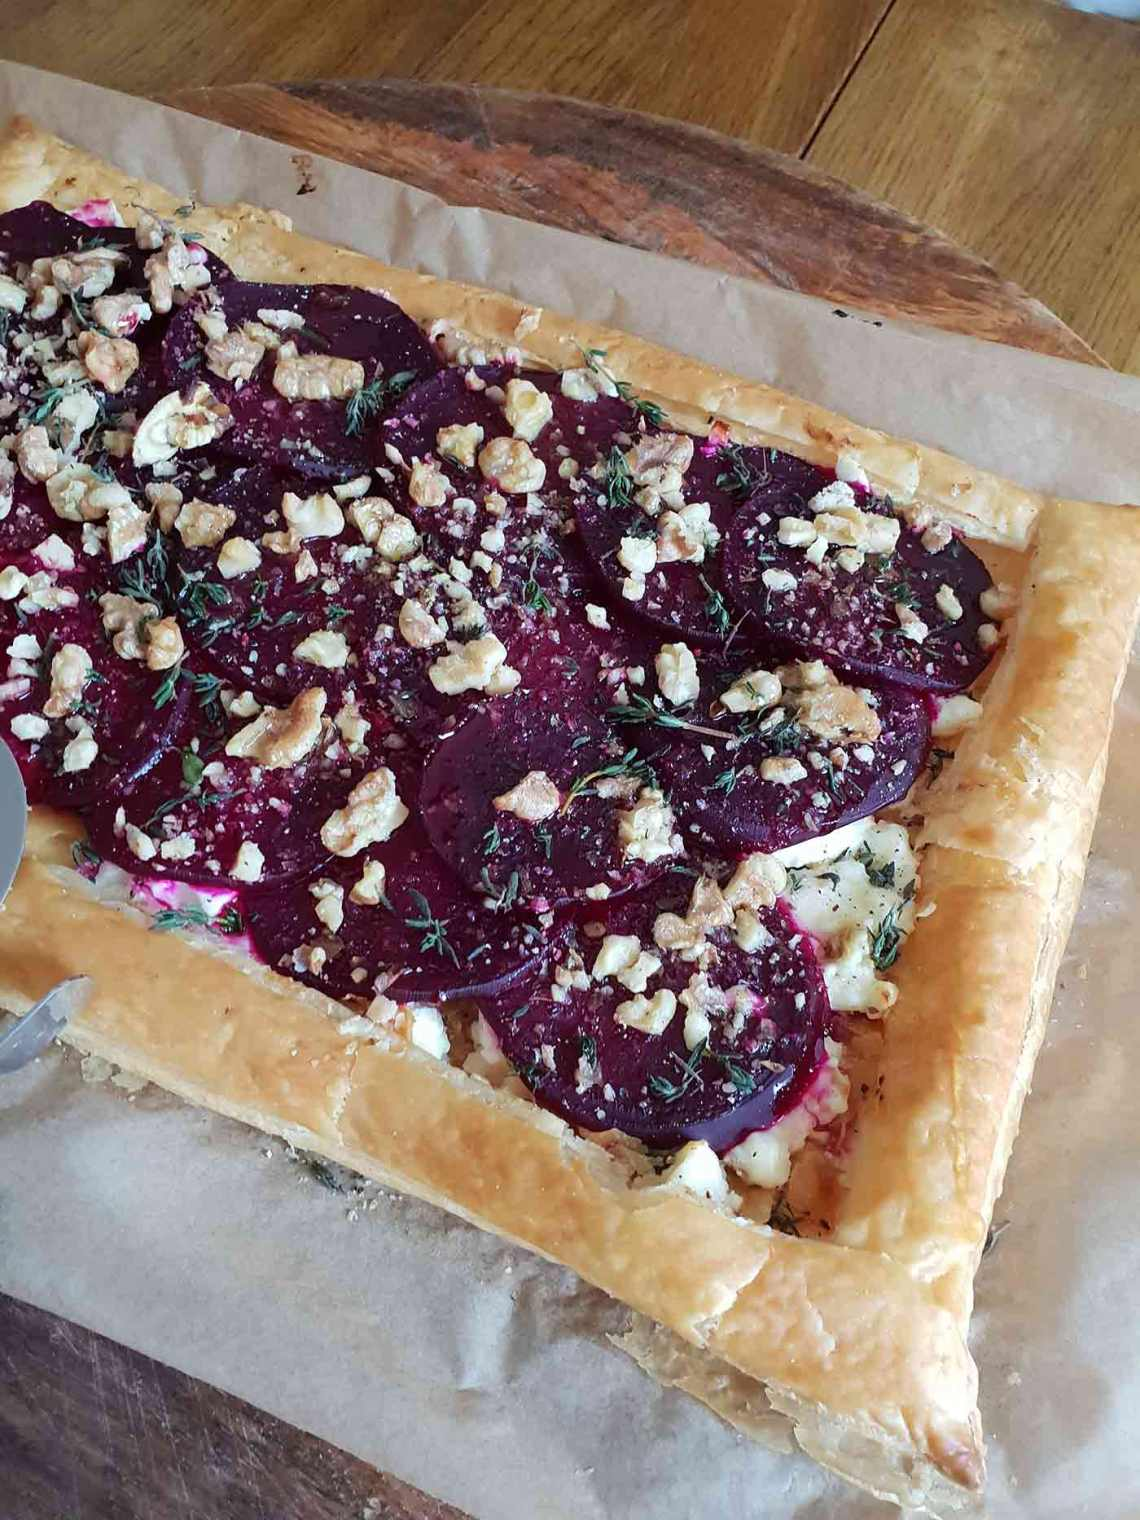 A beetroot and feta tart.